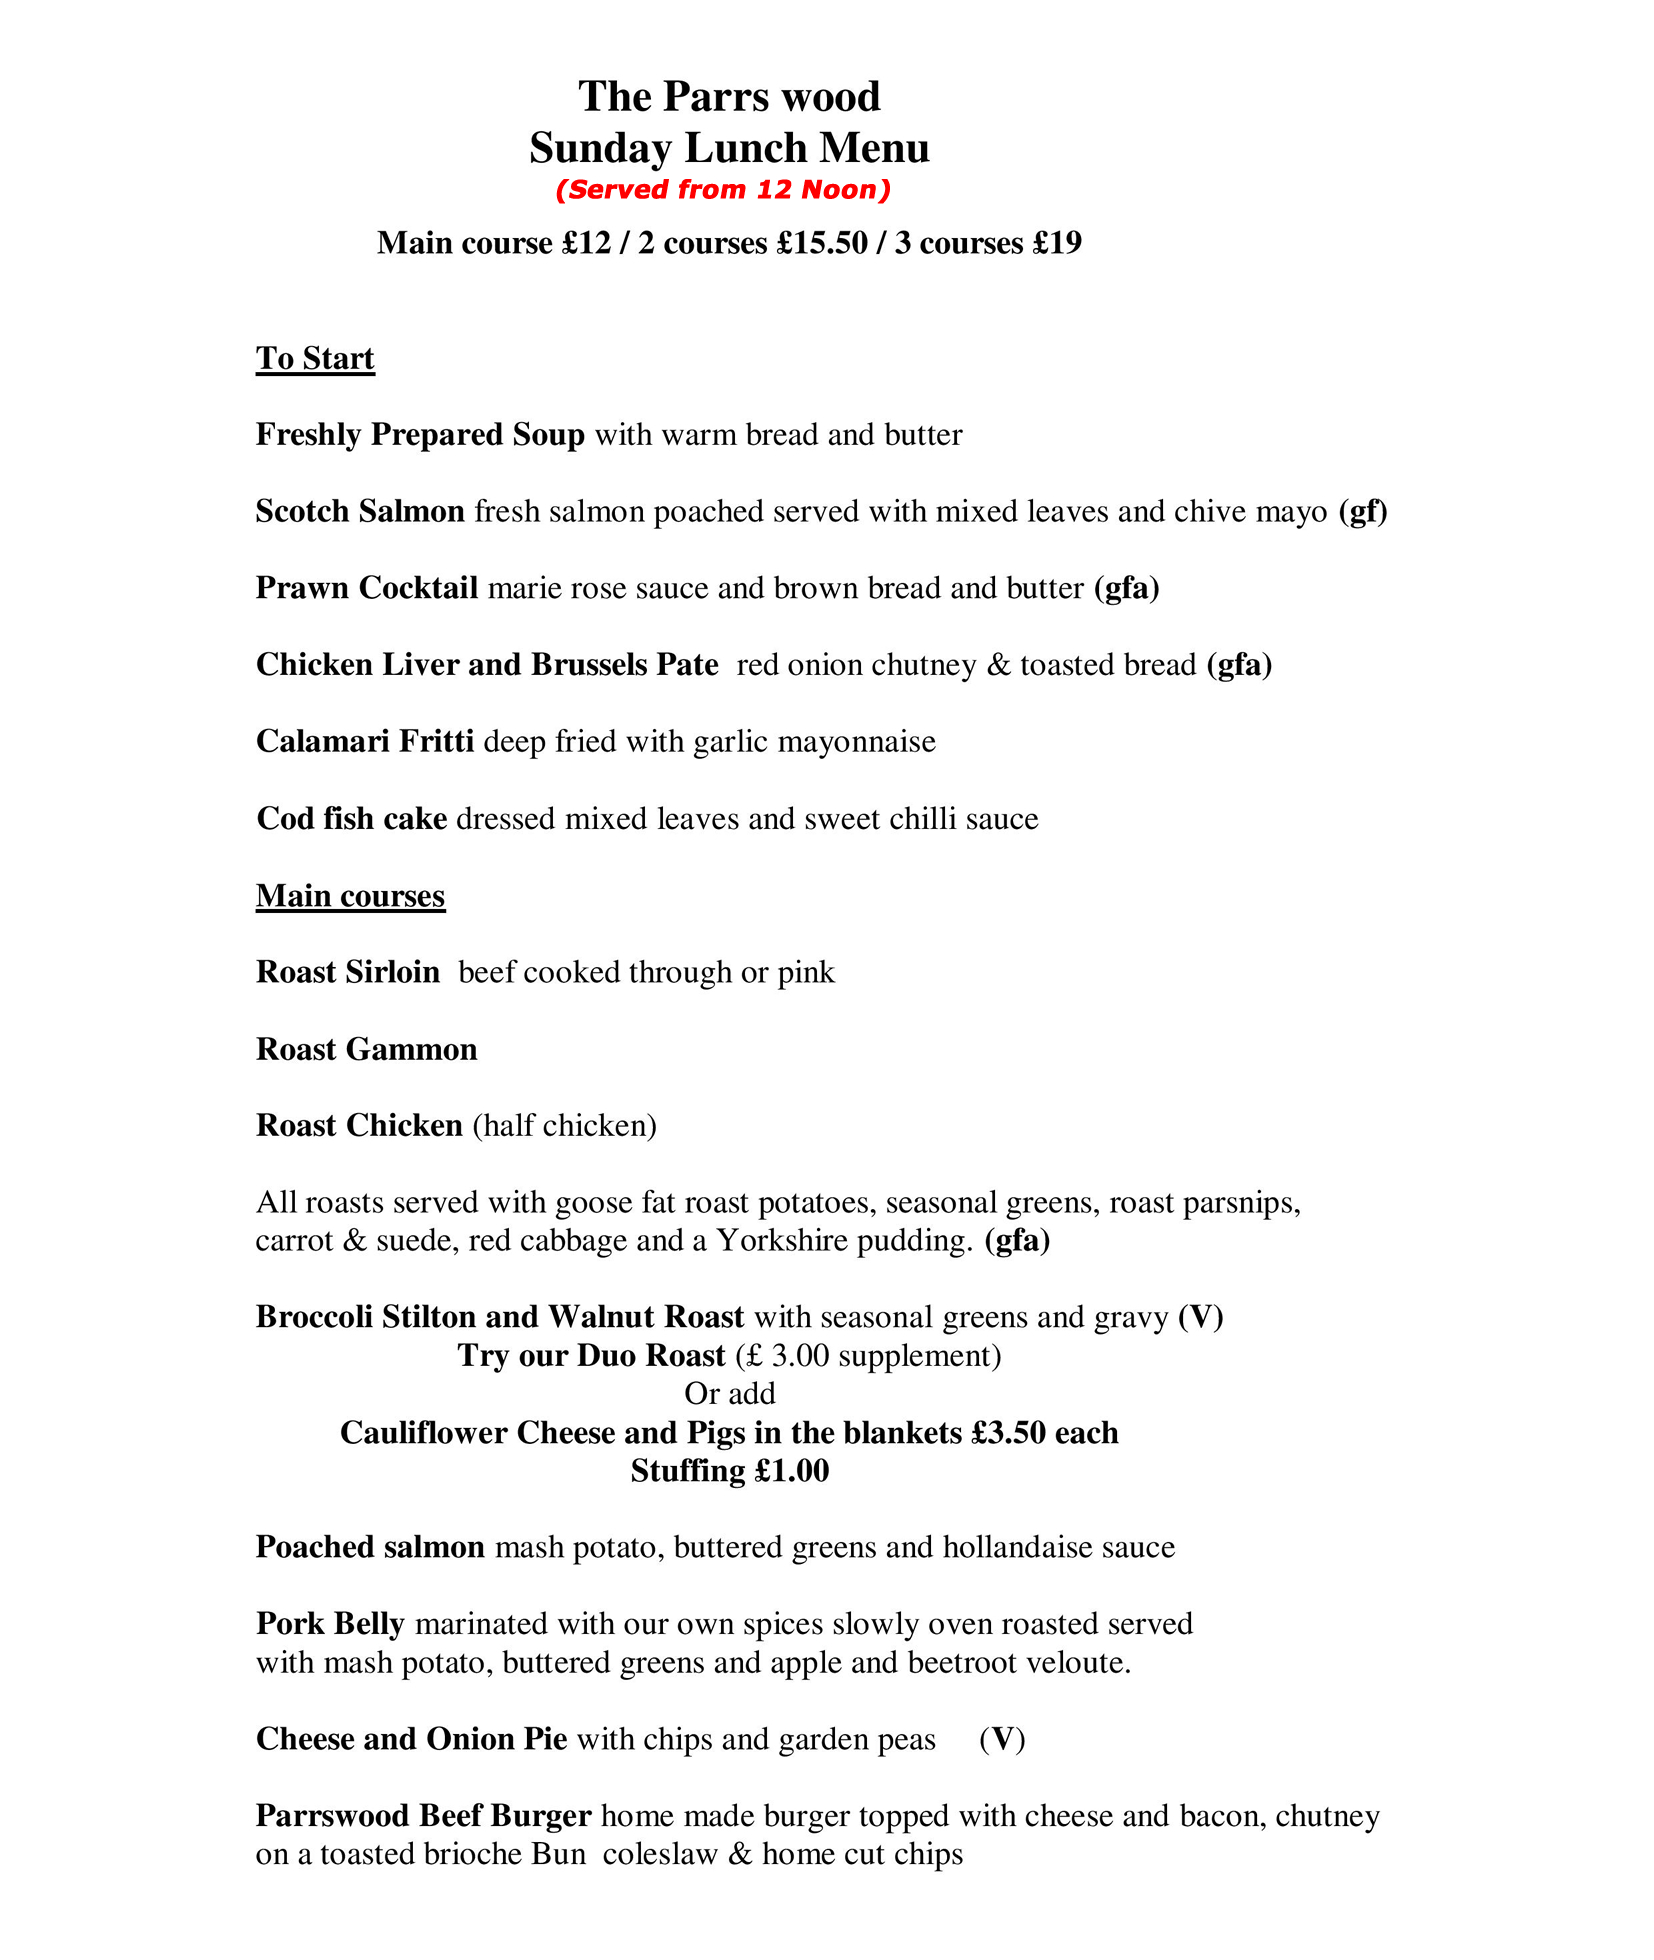 http://www.theparrswoodinn.co.uk/wp-content/uploads/2020/07/Sunday-Lunch-Menu-2020-001.jpg